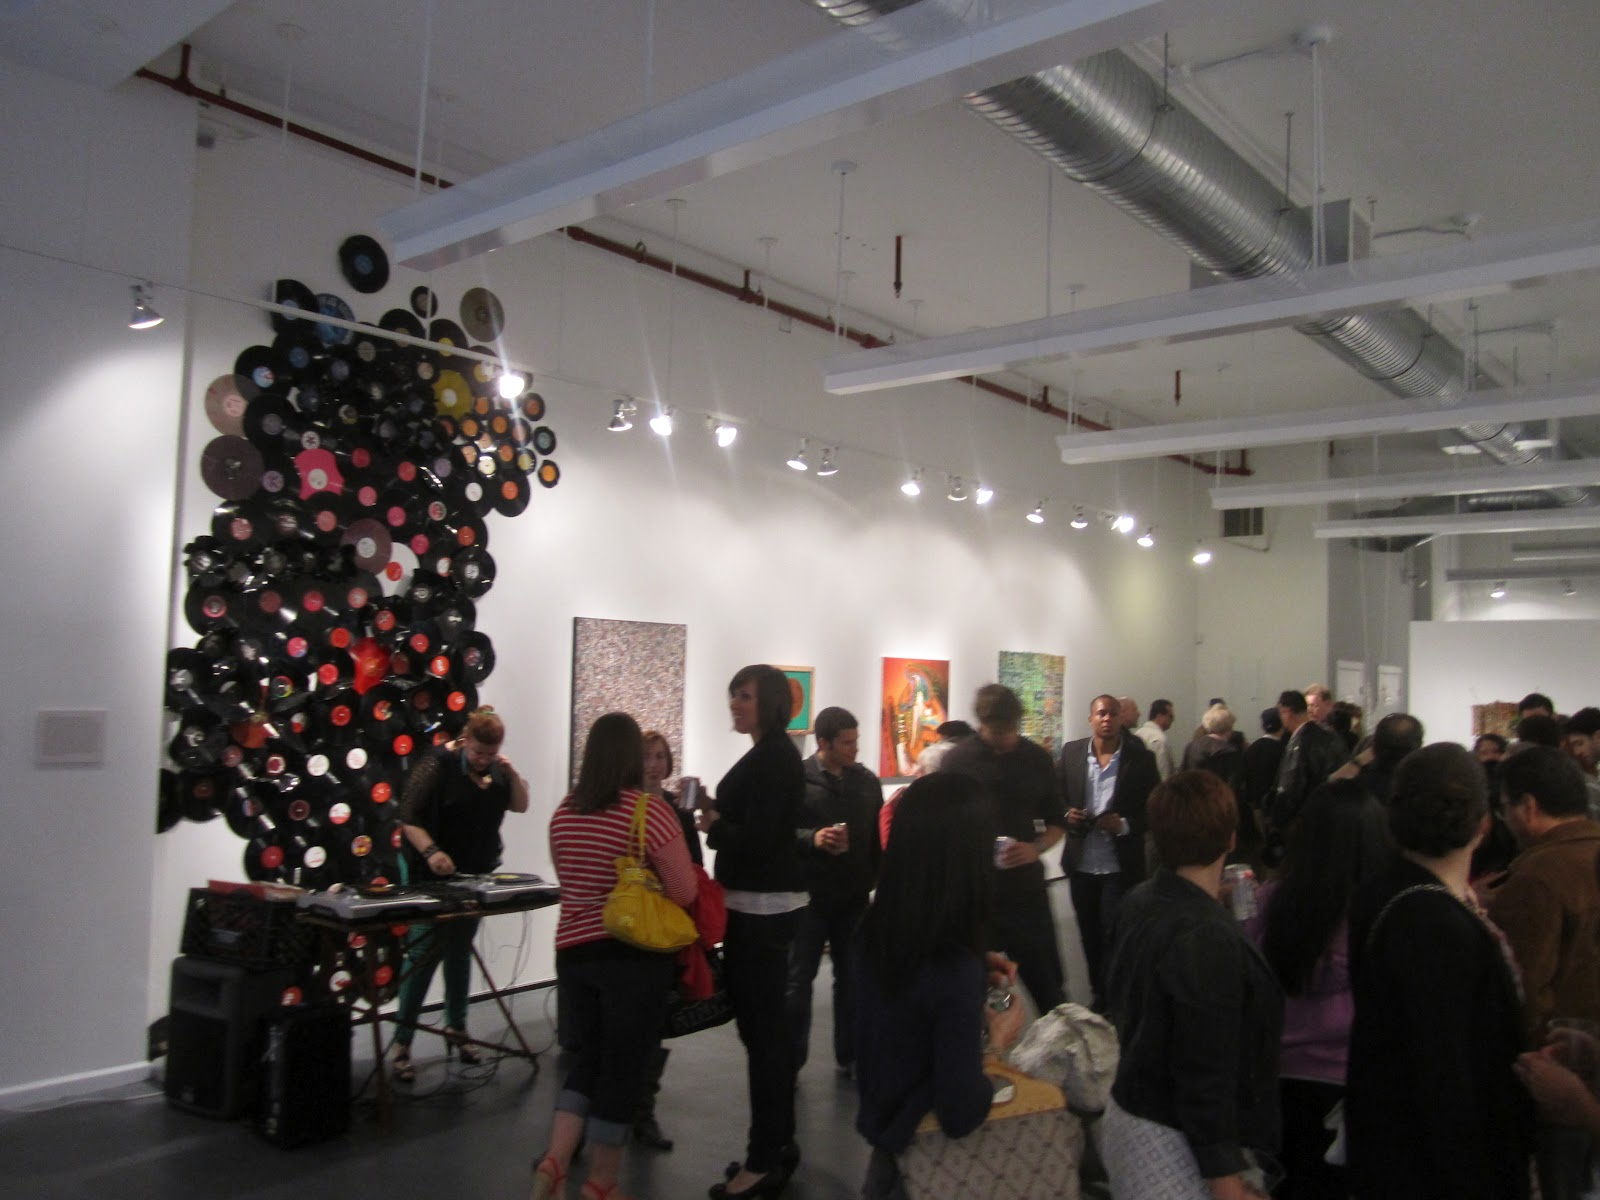 CUNY QUEENS COLLEGE MFA ART QCMFA 2012 Group Show at e